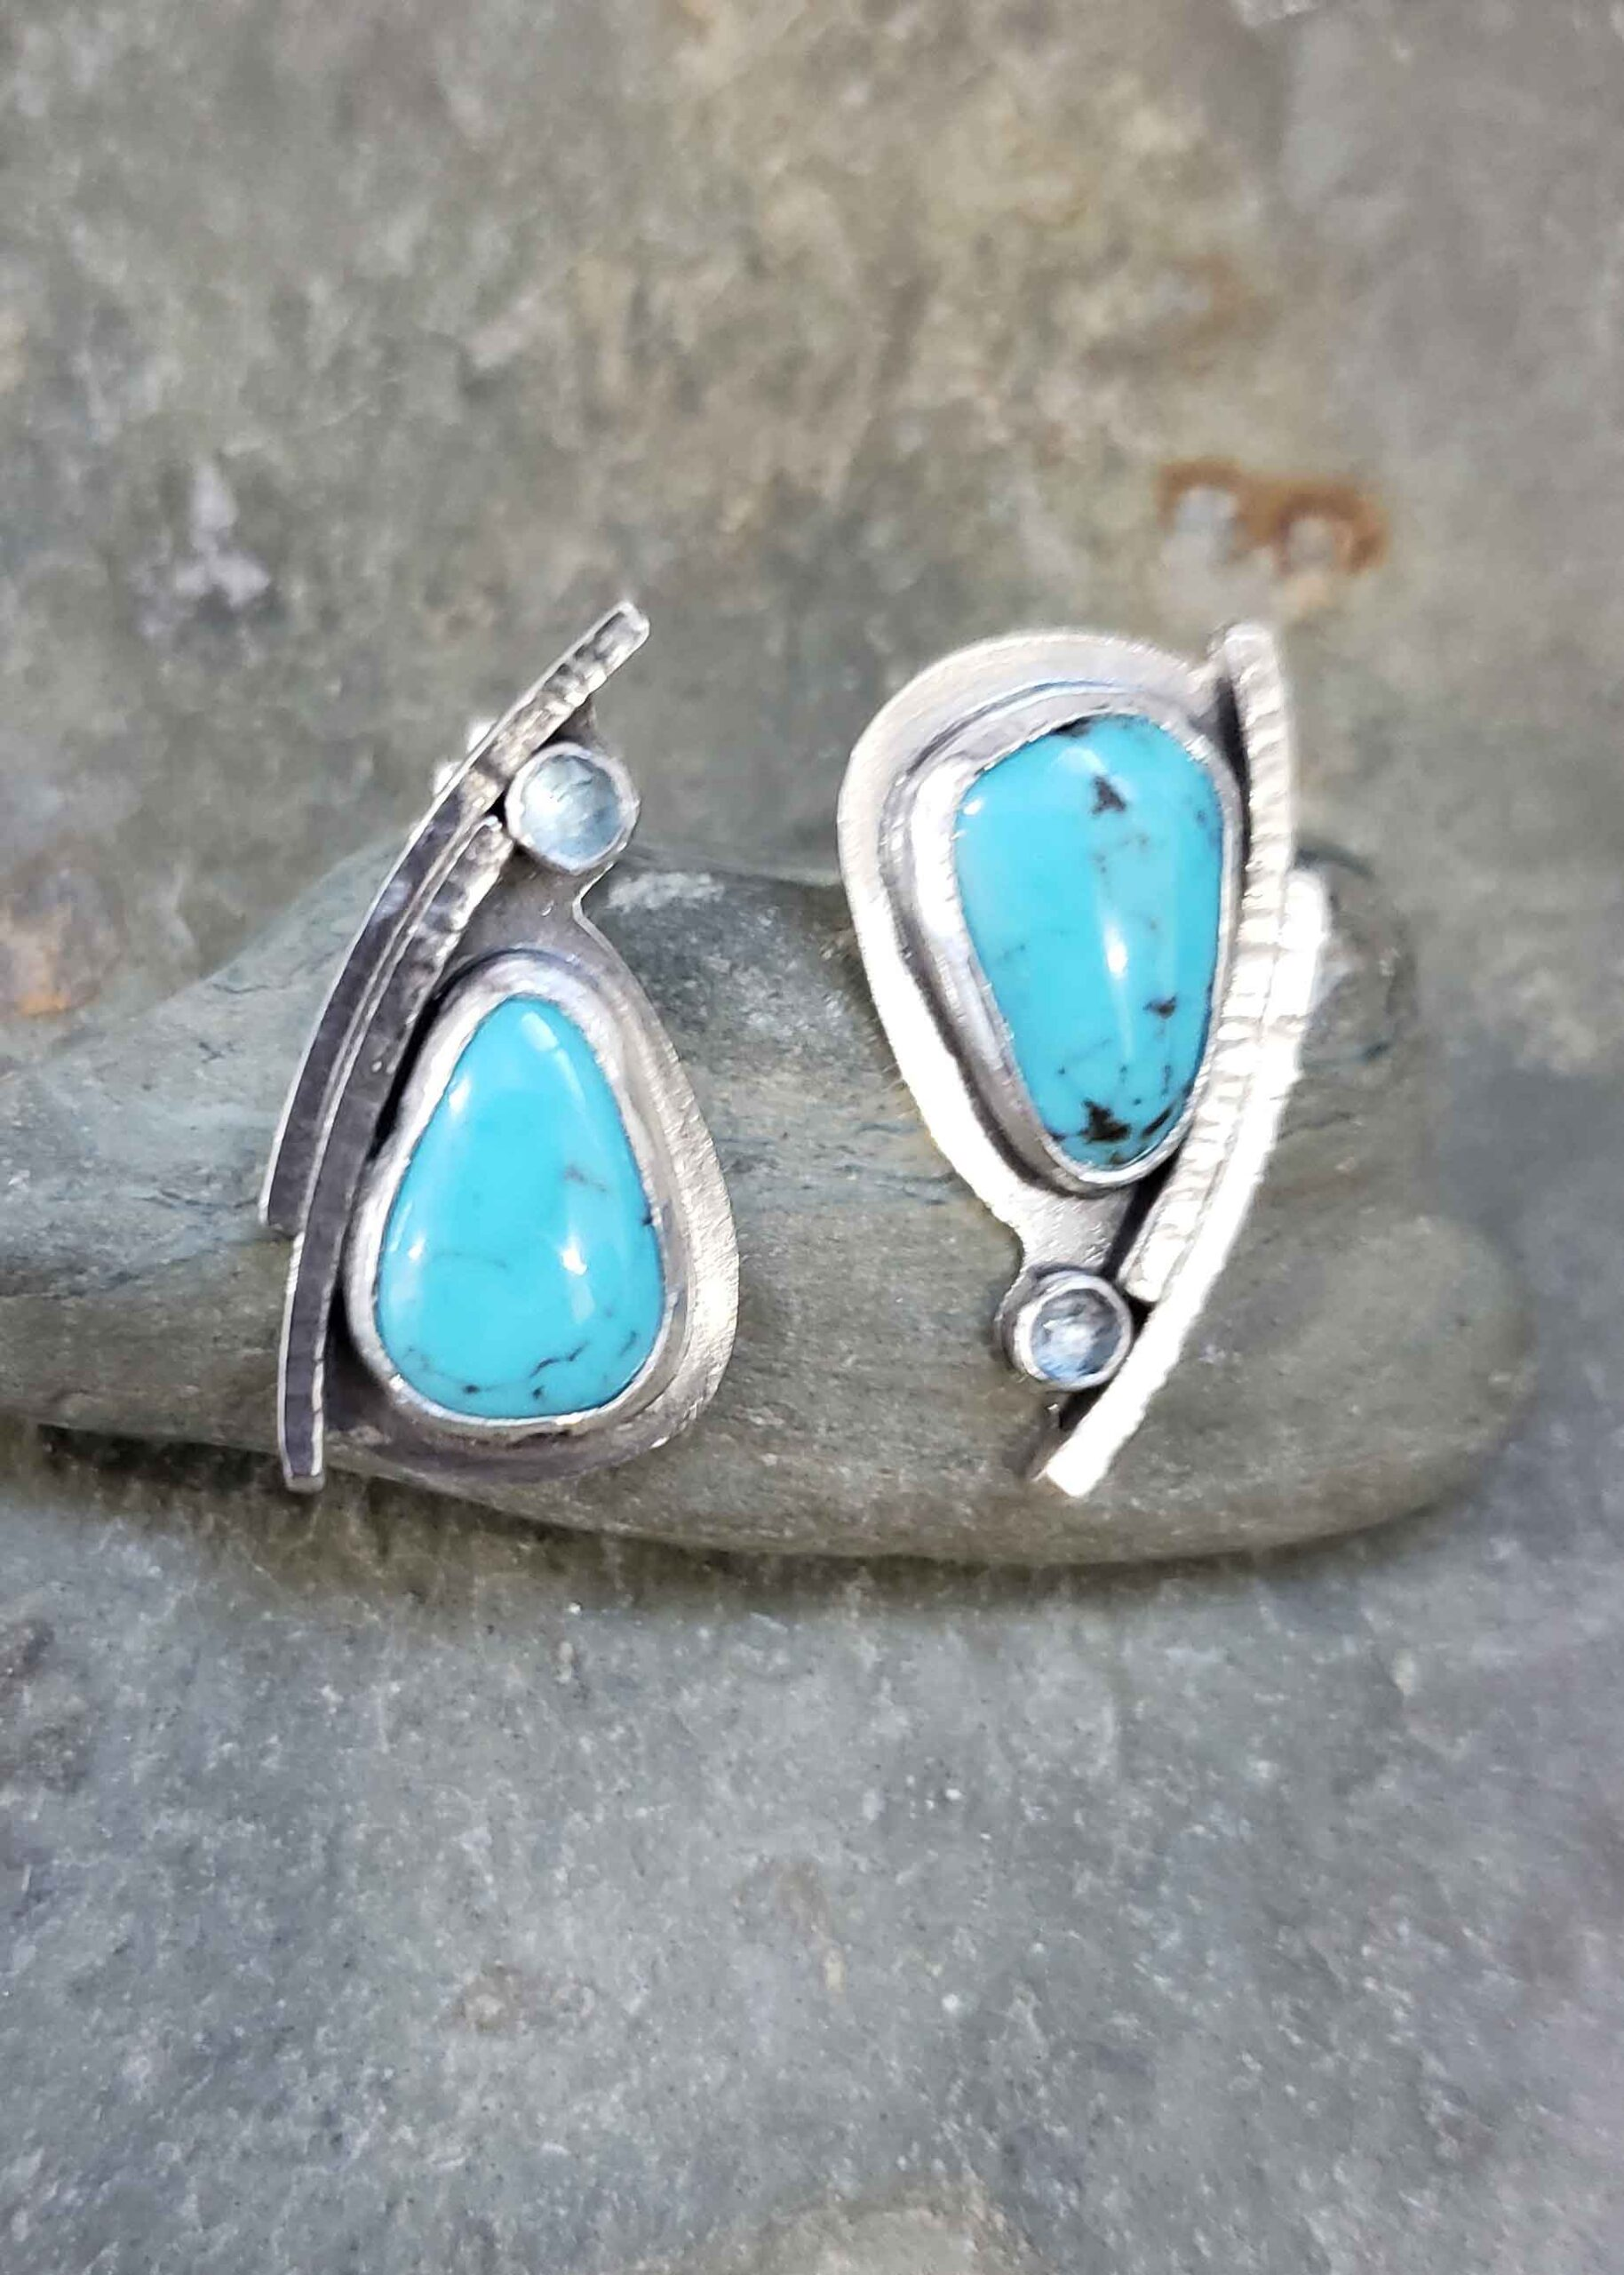 Turquoise and blue topaz silver post earrings by Dona Miller.